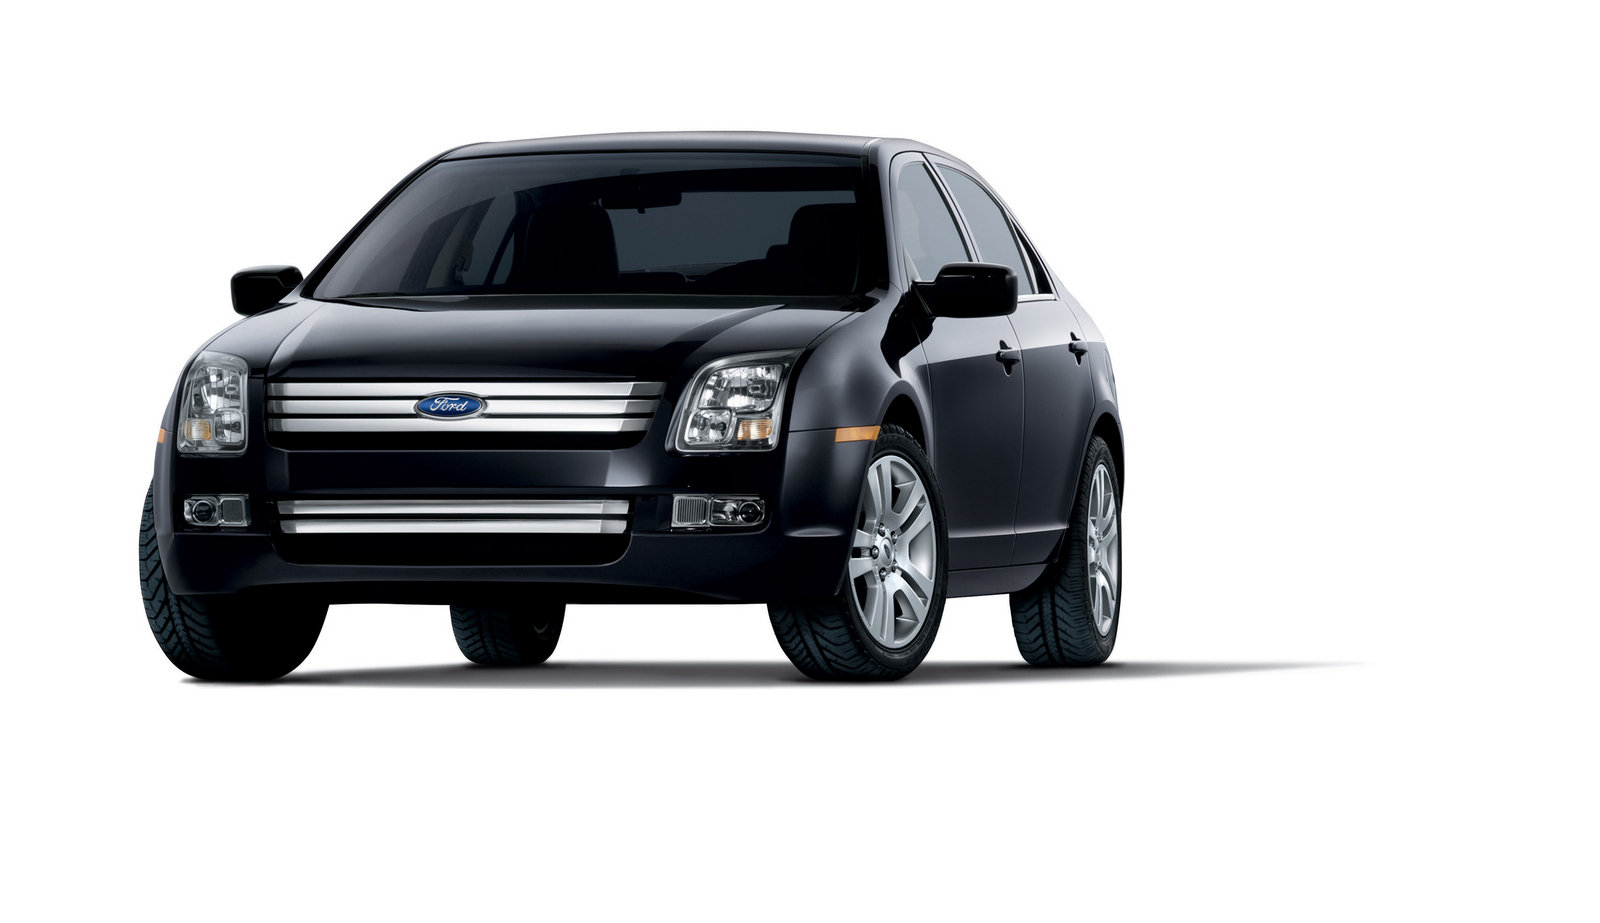 2005 ford fusion picture 38476 car review top speed. Black Bedroom Furniture Sets. Home Design Ideas